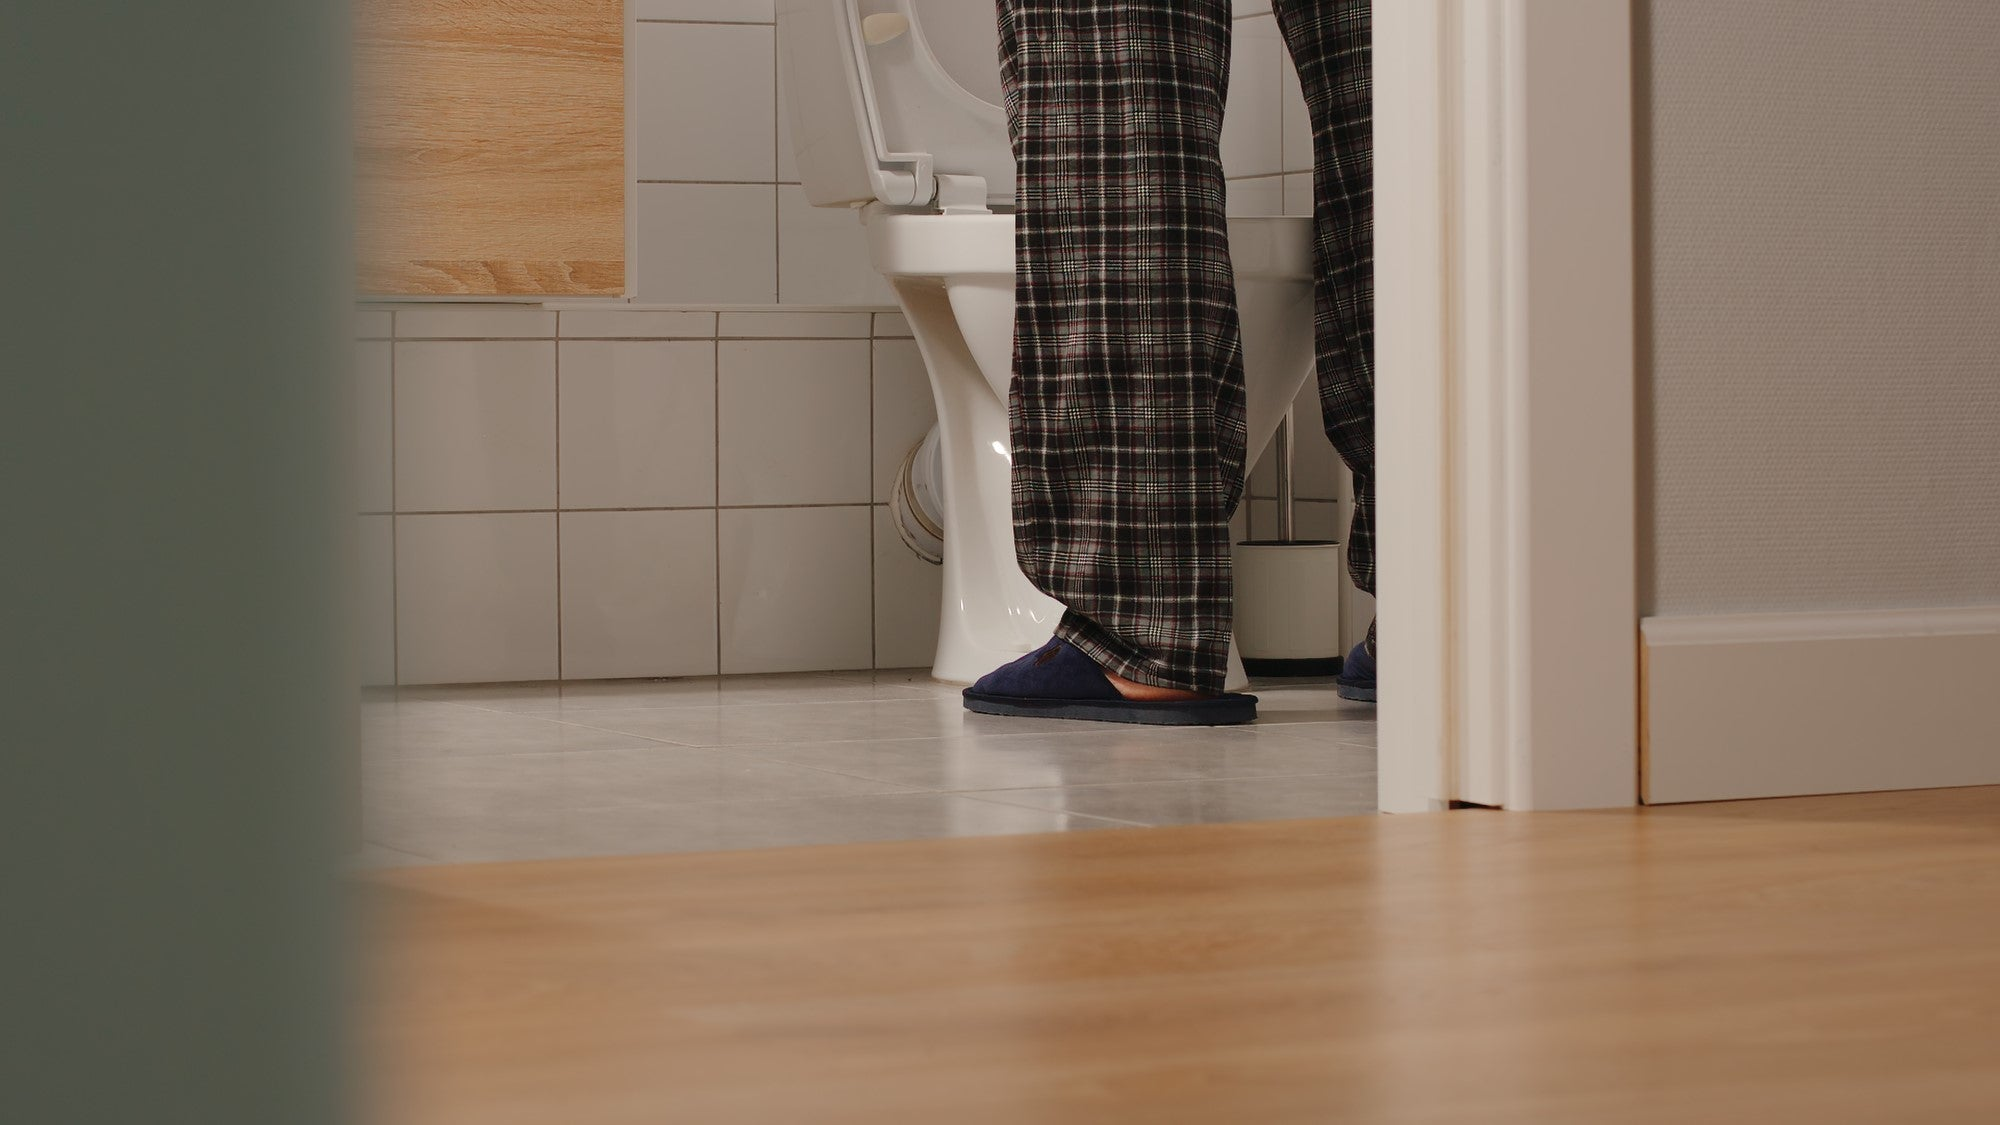 man in pyjamas and slippers standing at toilet, only lower legs visible